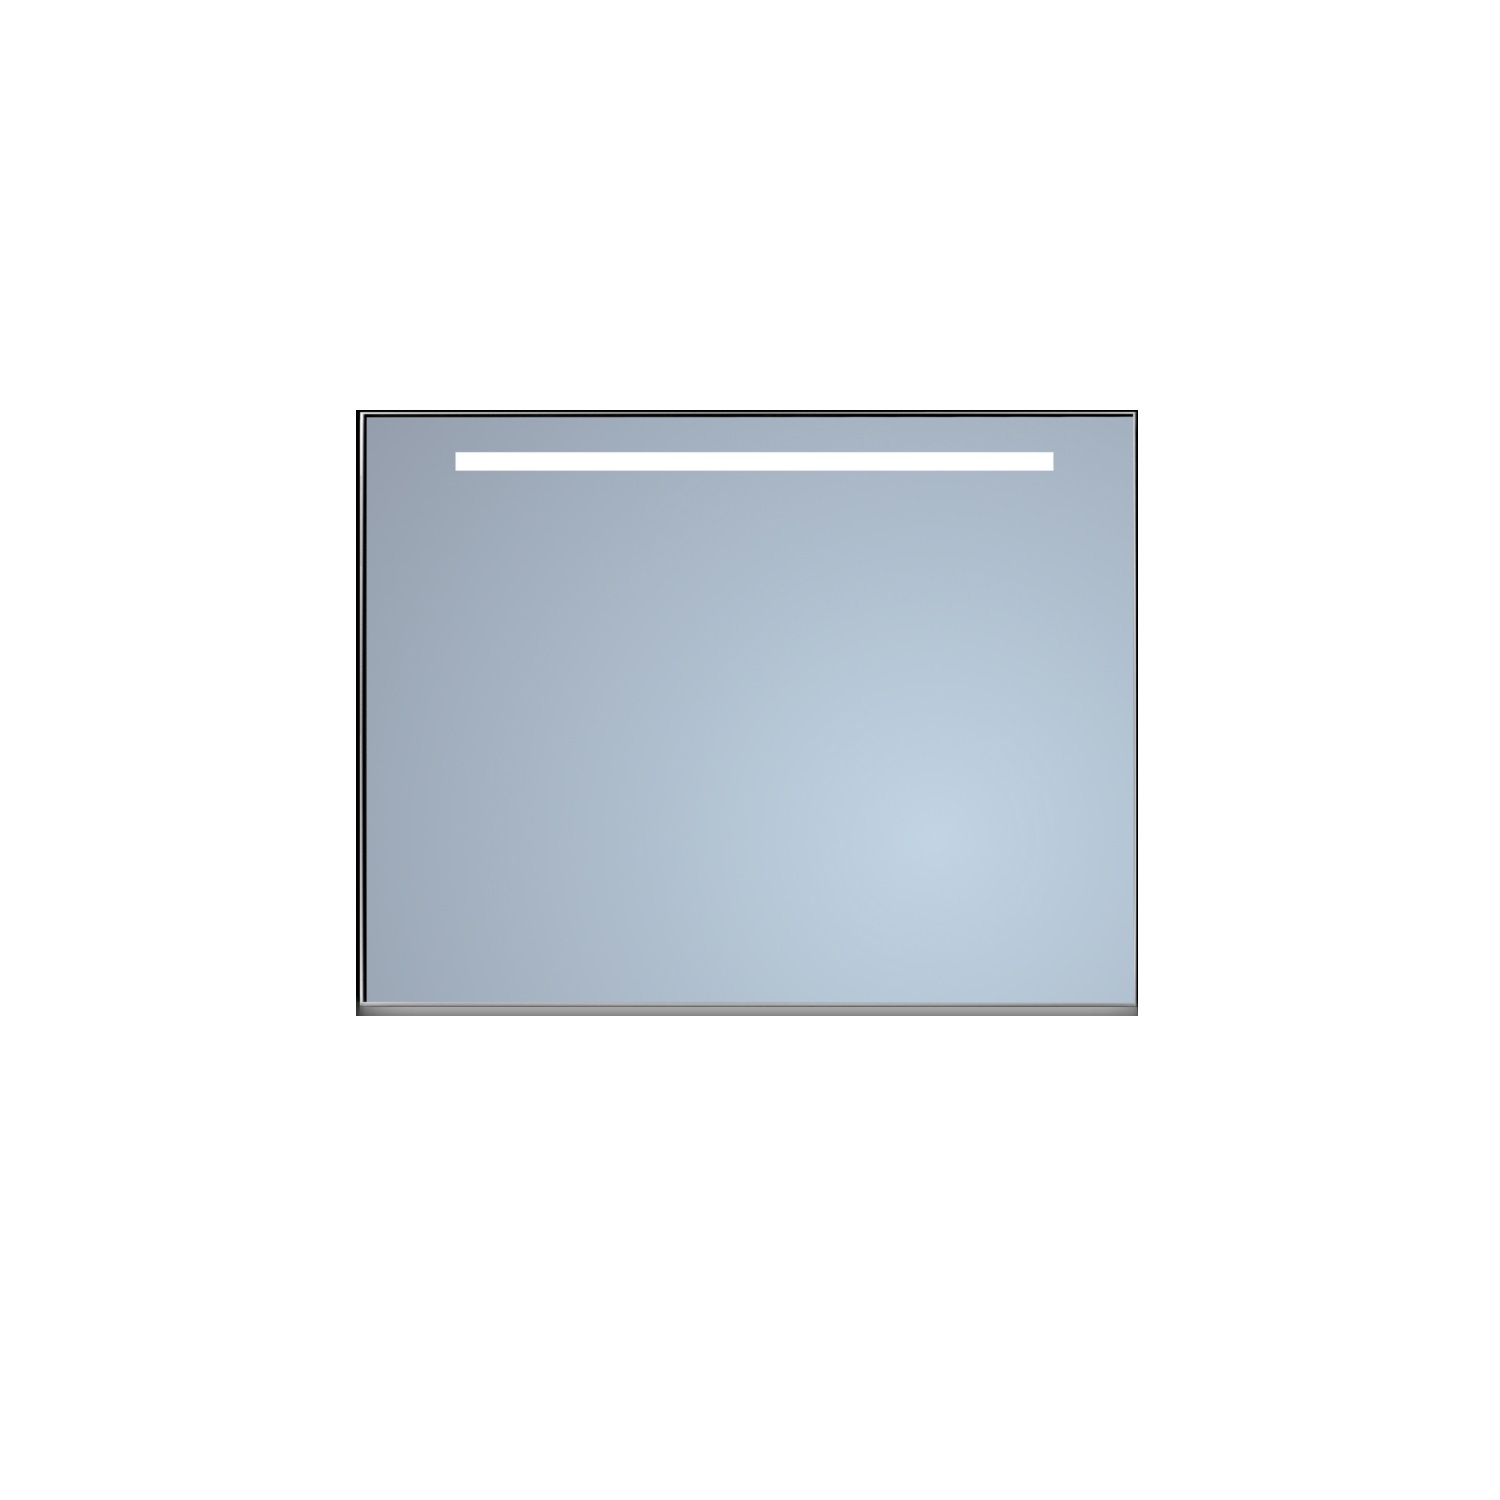 Badkamerspiegel Sanicare Q-Mirrors Ambiance en 'Cold White' LED-verlichting 70x70x3,5 Chroom Omlijsting